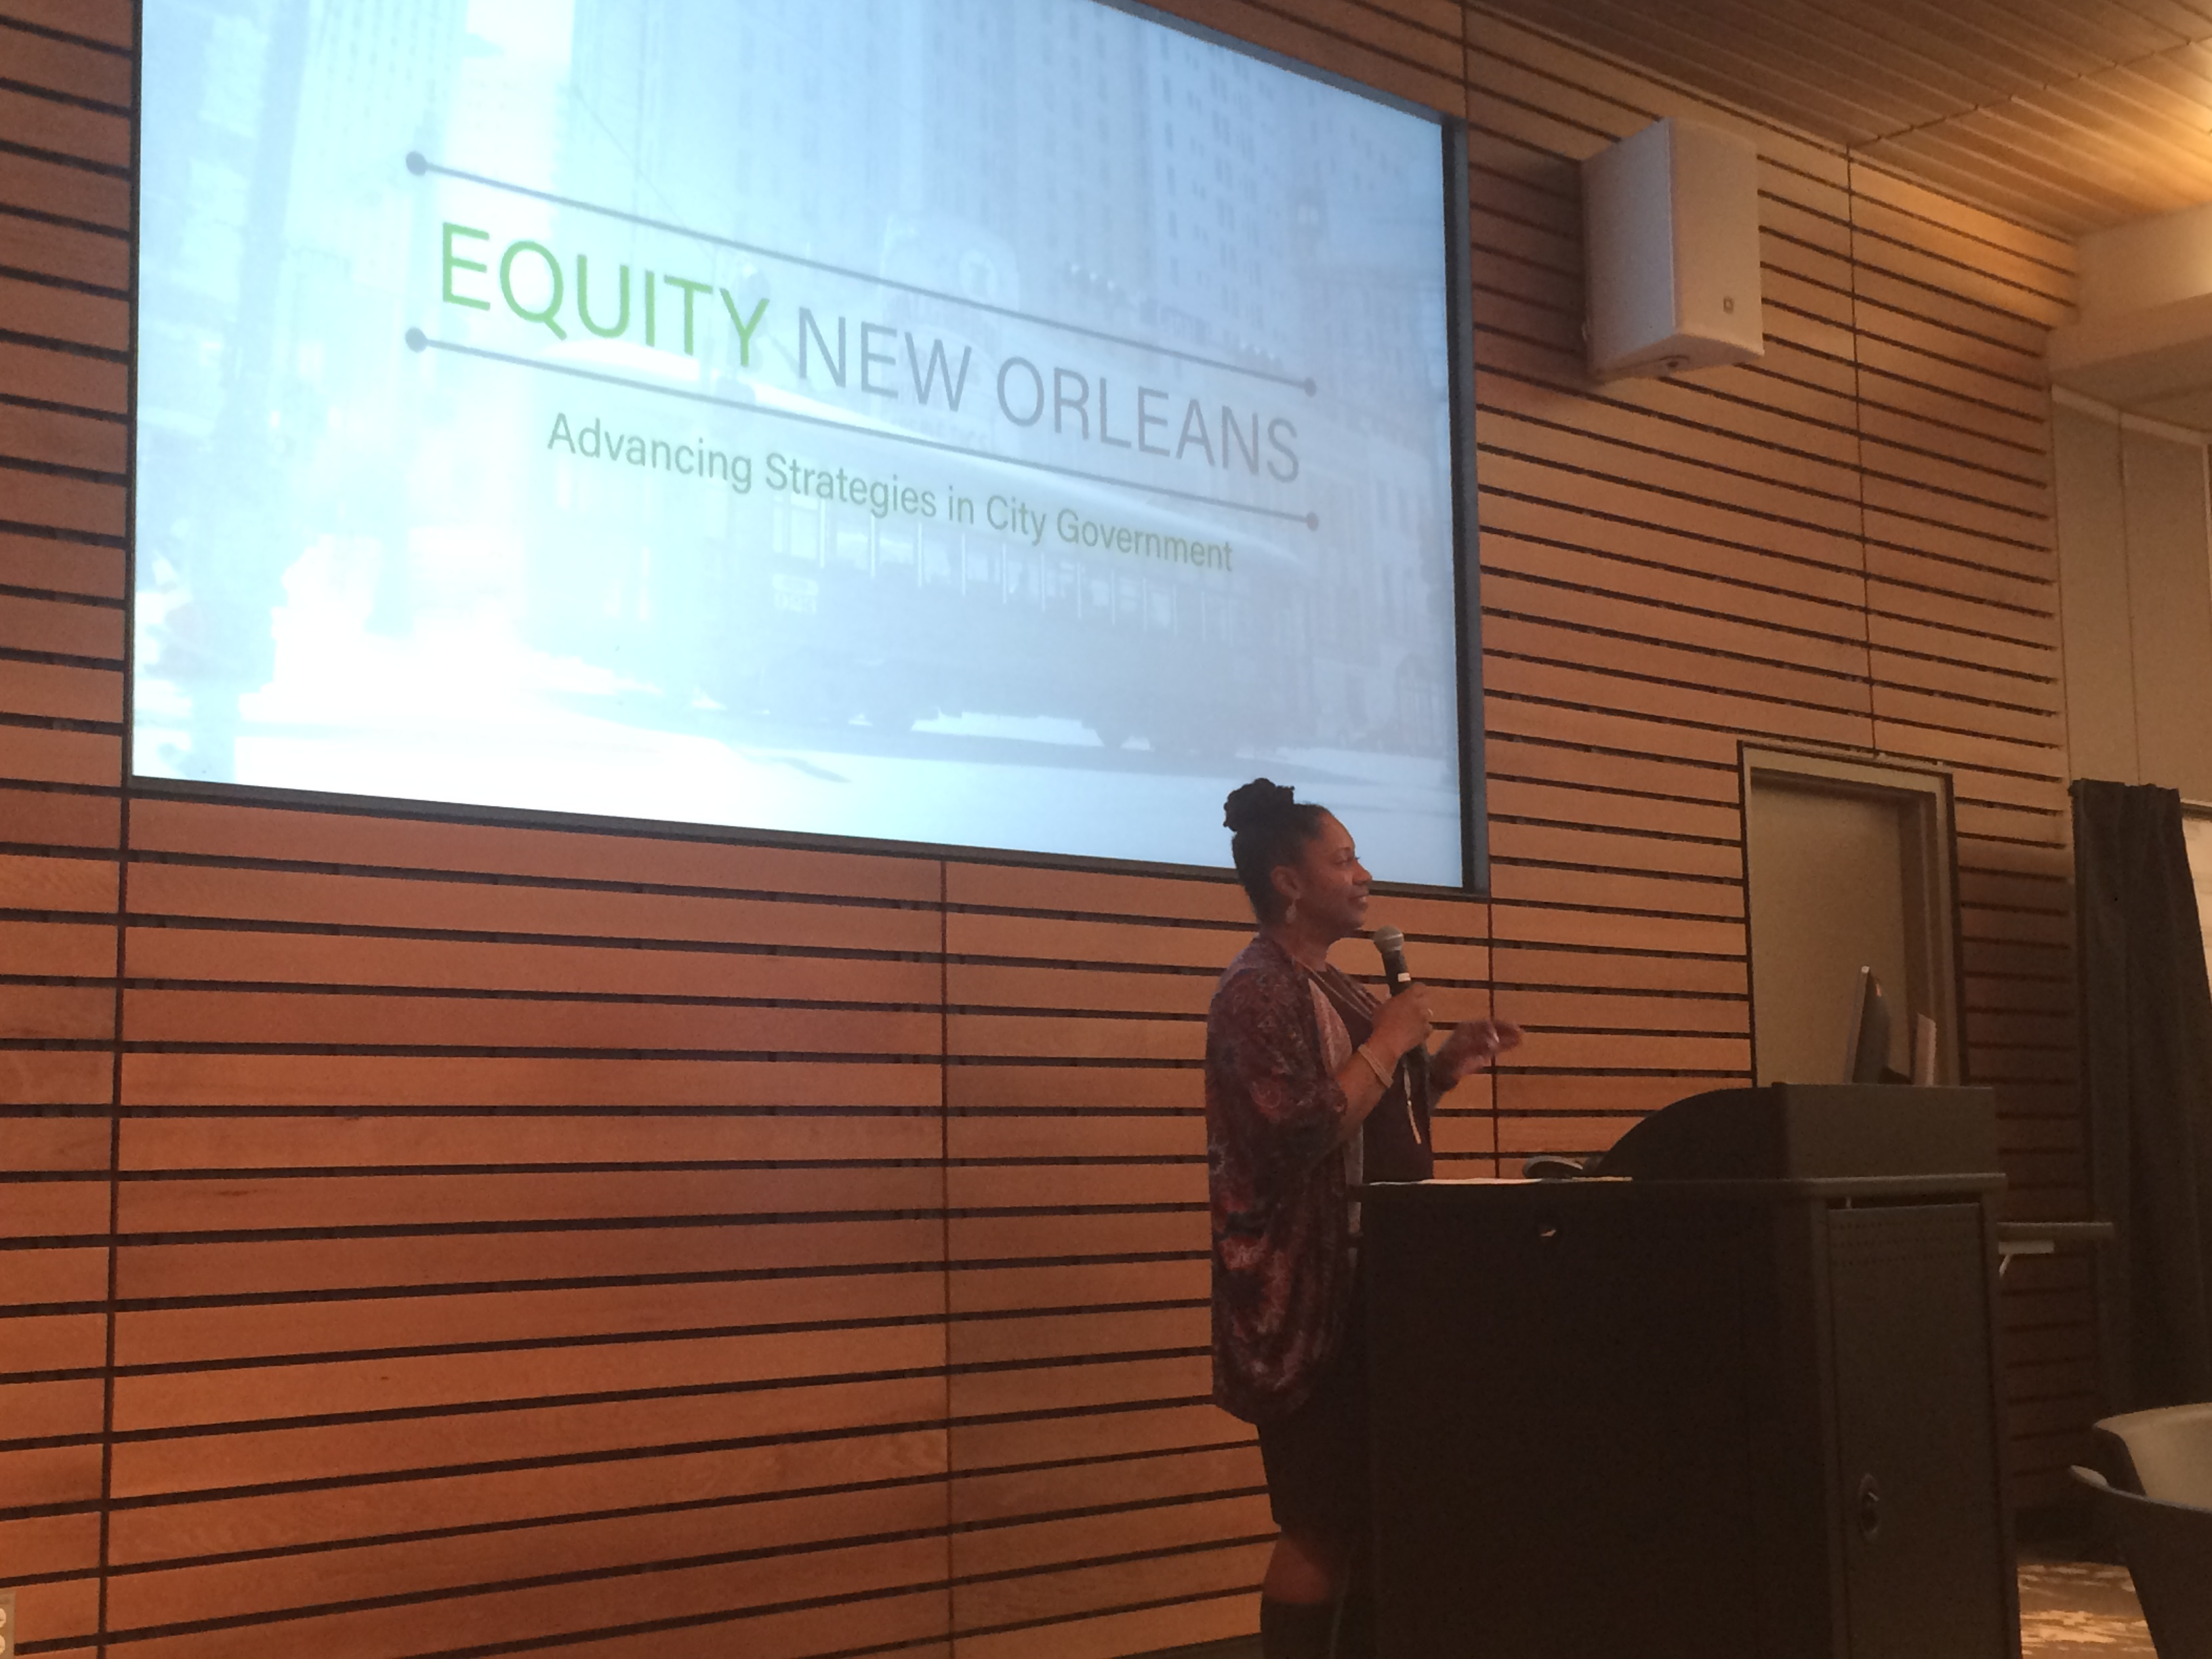 'Equity New Orleans' brings analytics to city decisions